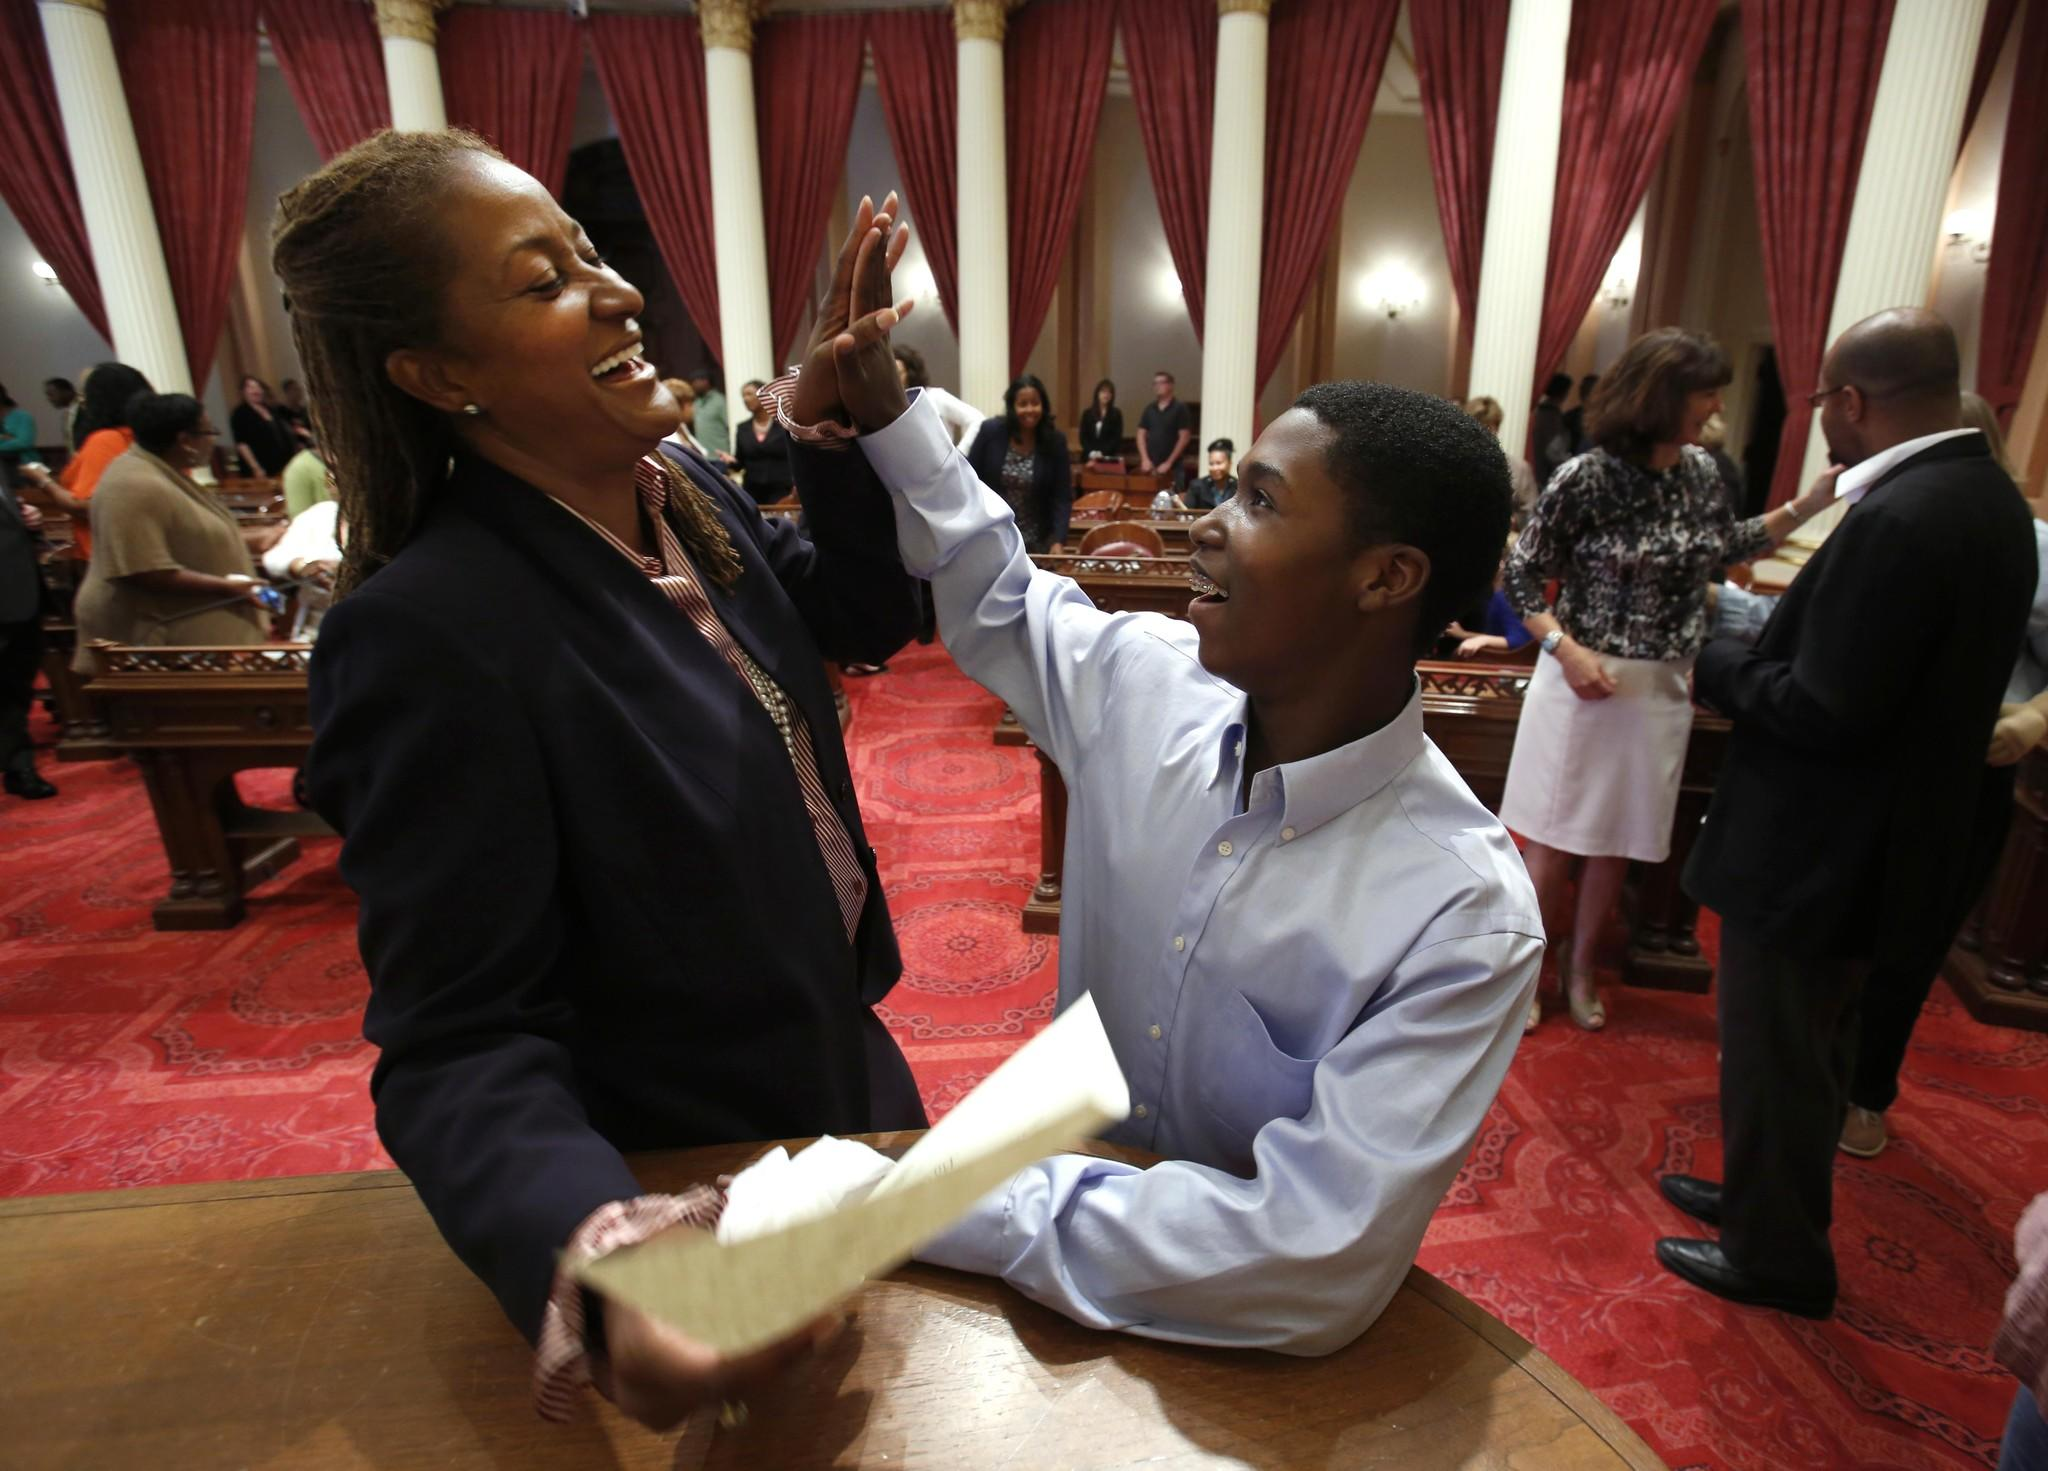 Sen. Holly Mitchell (D-Los Angeles)is the only African American in the state Senate after Sen. Roderick Wright took a leave of absence. Above, Mitchell gets a high-five from her son, Ryan, 13, after signing her oath of office at the Capitol last fall.